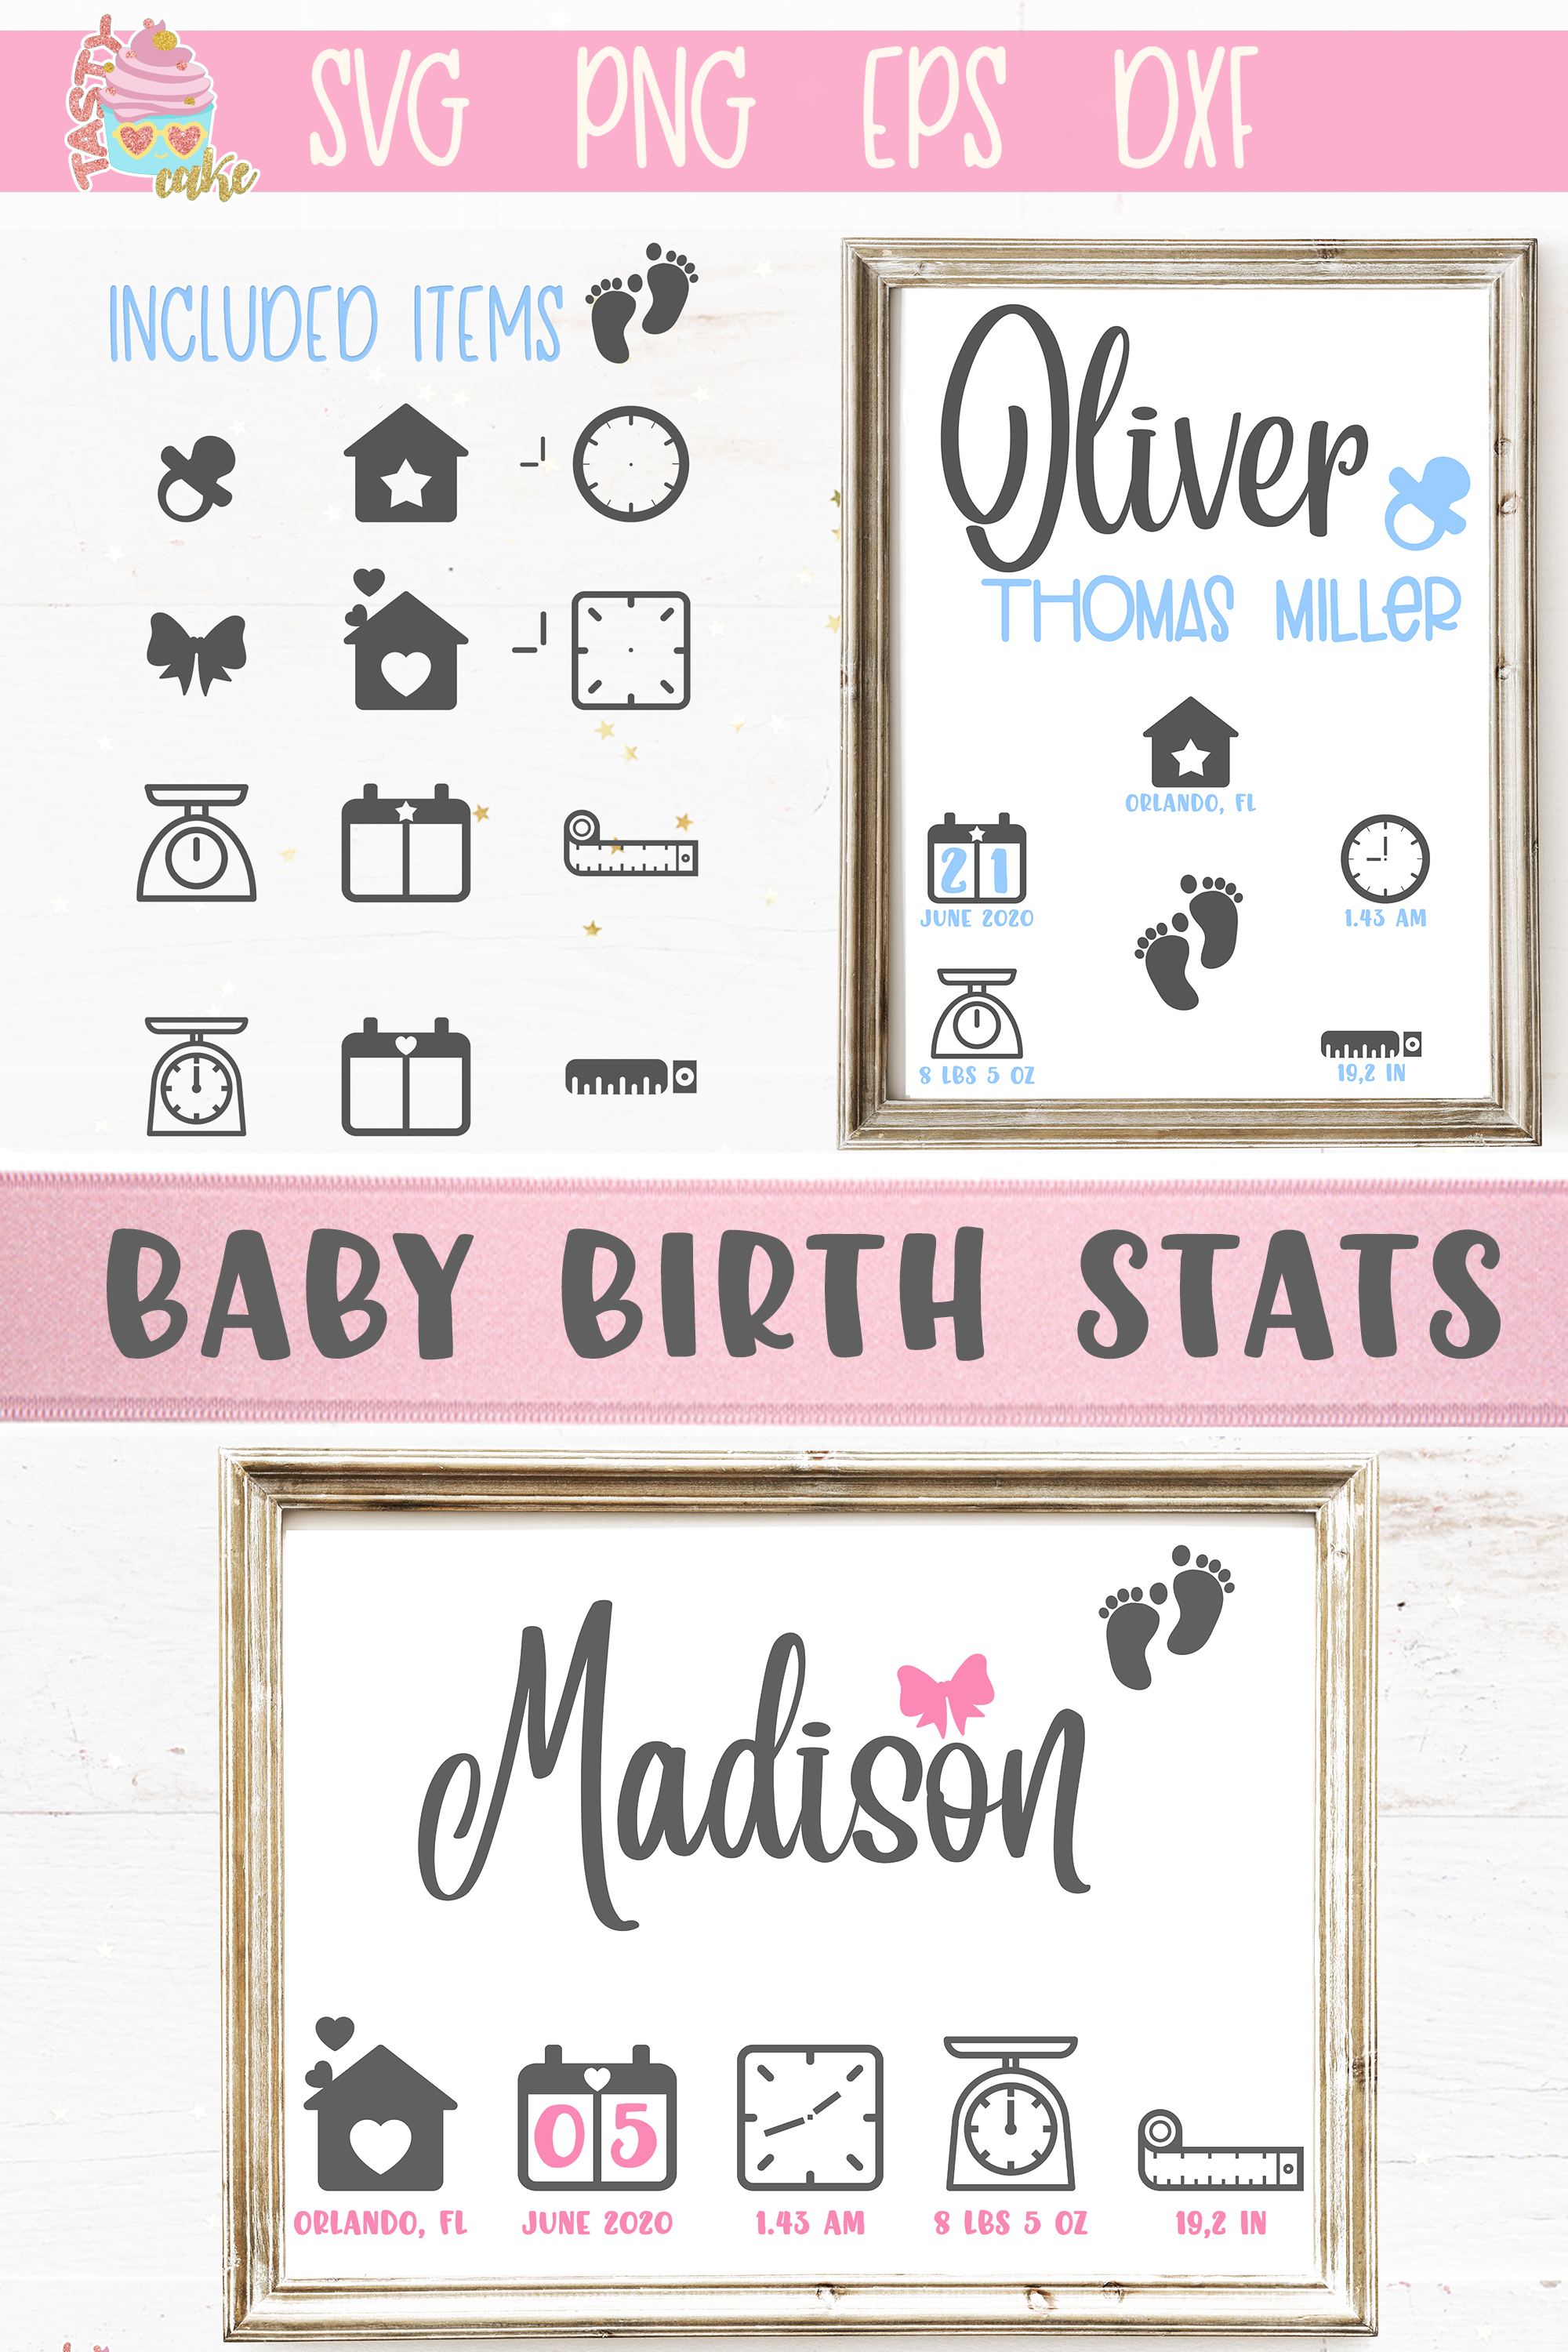 Baby Birth Stats SVG - Birth Announcement Template example image 3